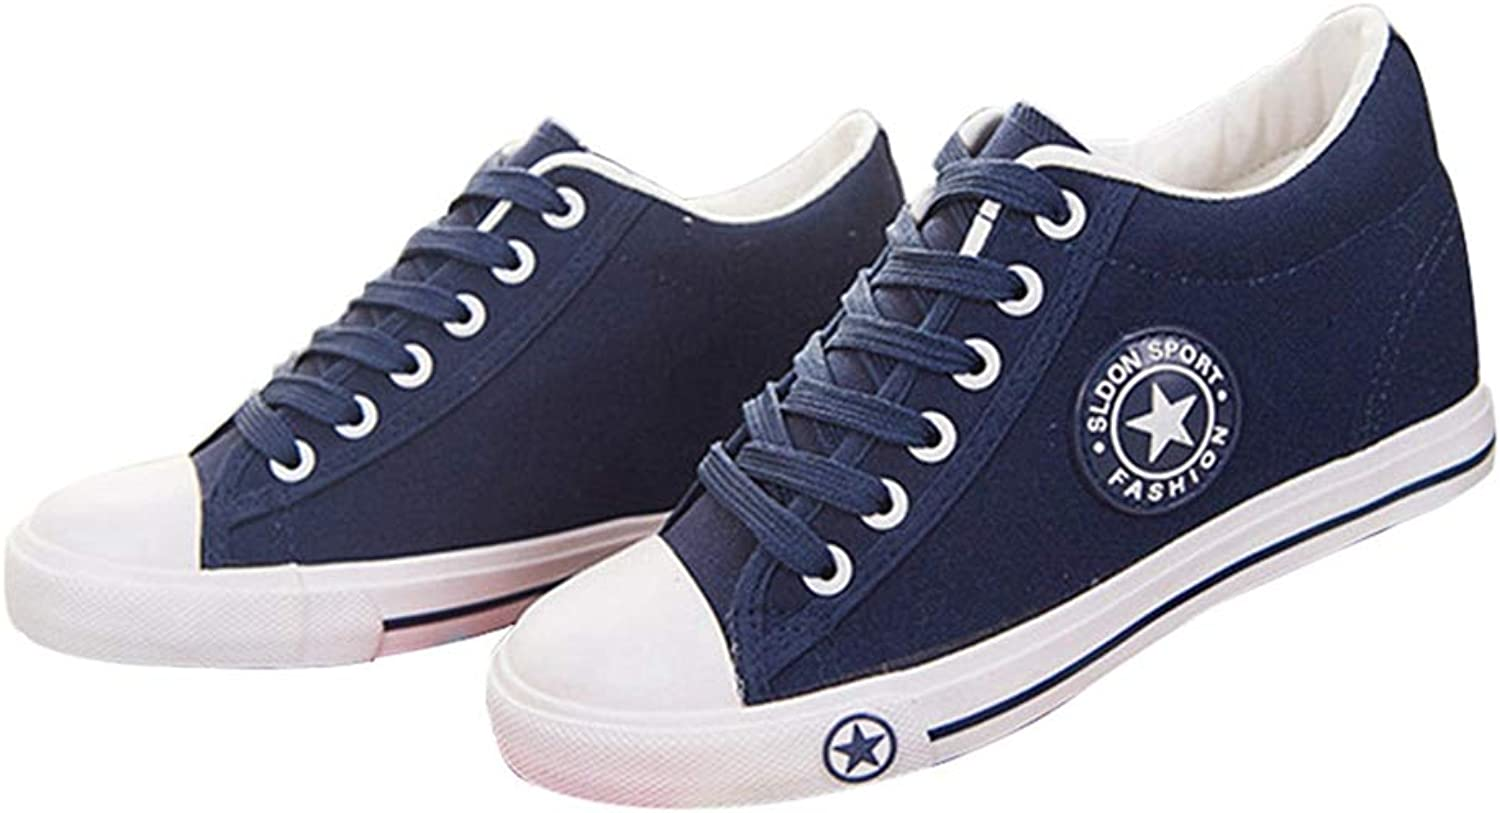 Zarbrina Wedges Sneakers for Womens Canvas Lace up shoes Casual Female Trainers Cute bluee Hidden Height Heel